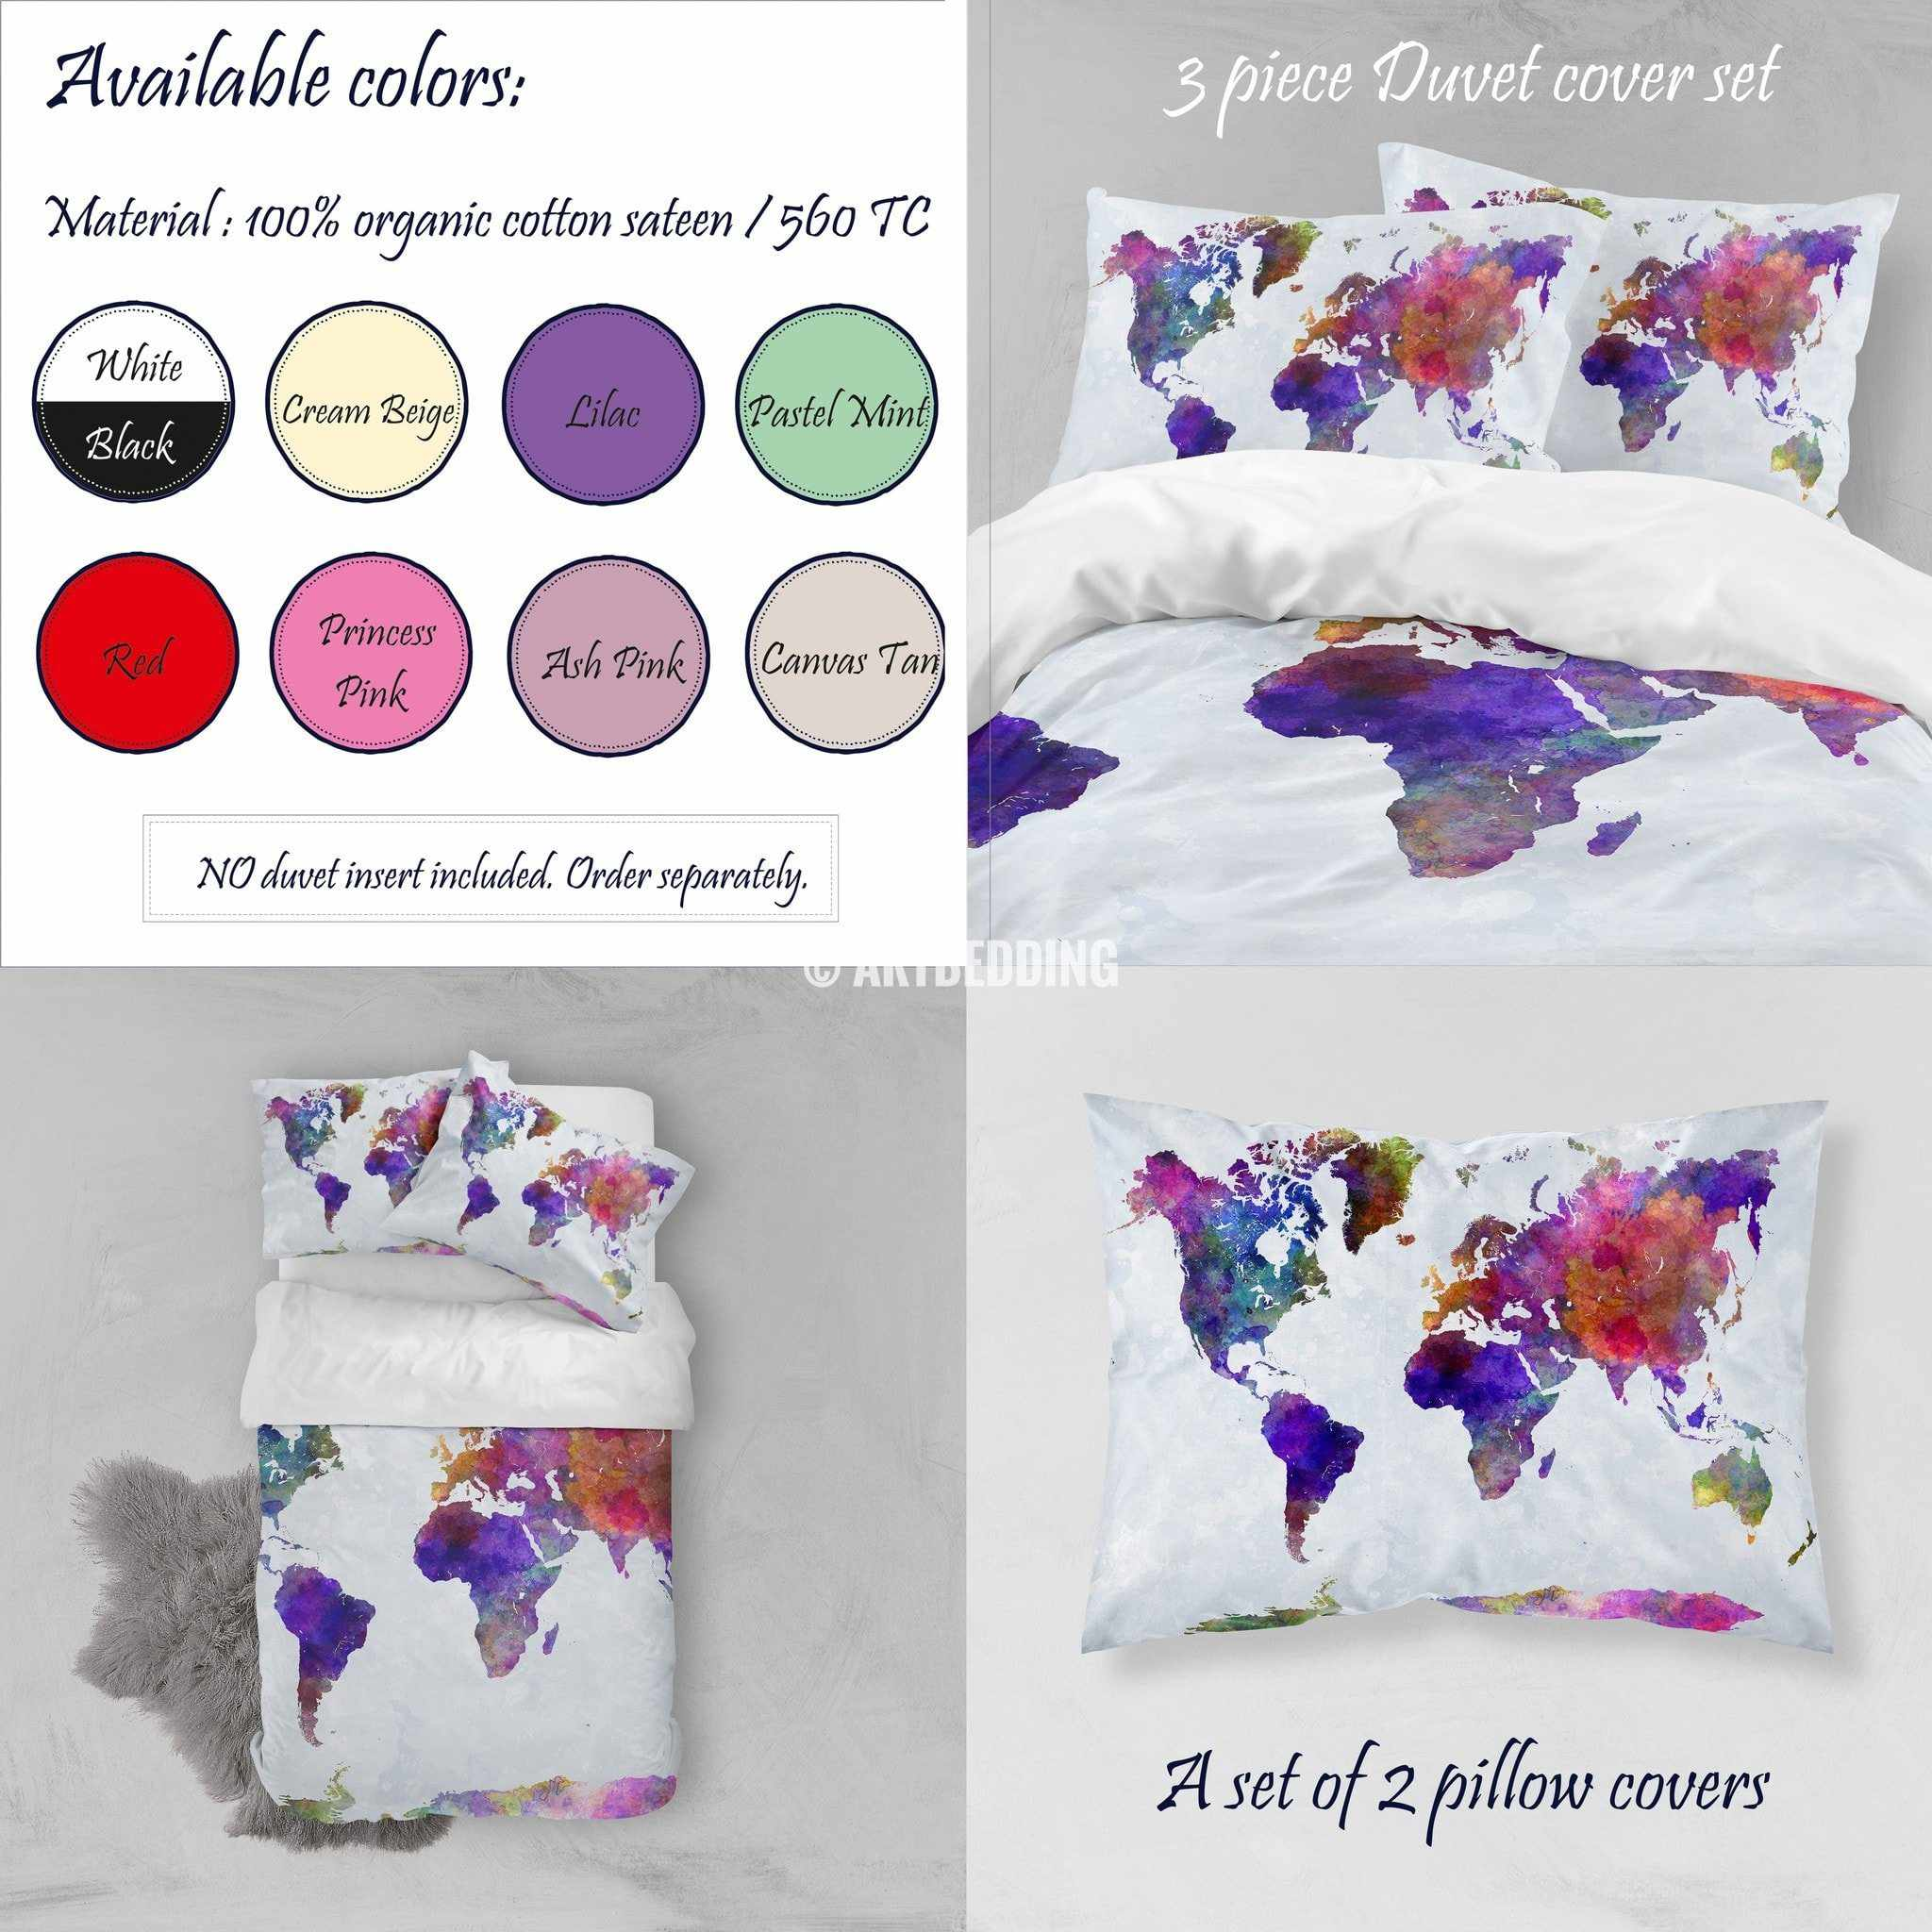 Watercolor world map bedding boho chic world map duvet cover set watercolor world map bedding watercolor art print duvet cover set grunge splashes duvet cover gumiabroncs Gallery